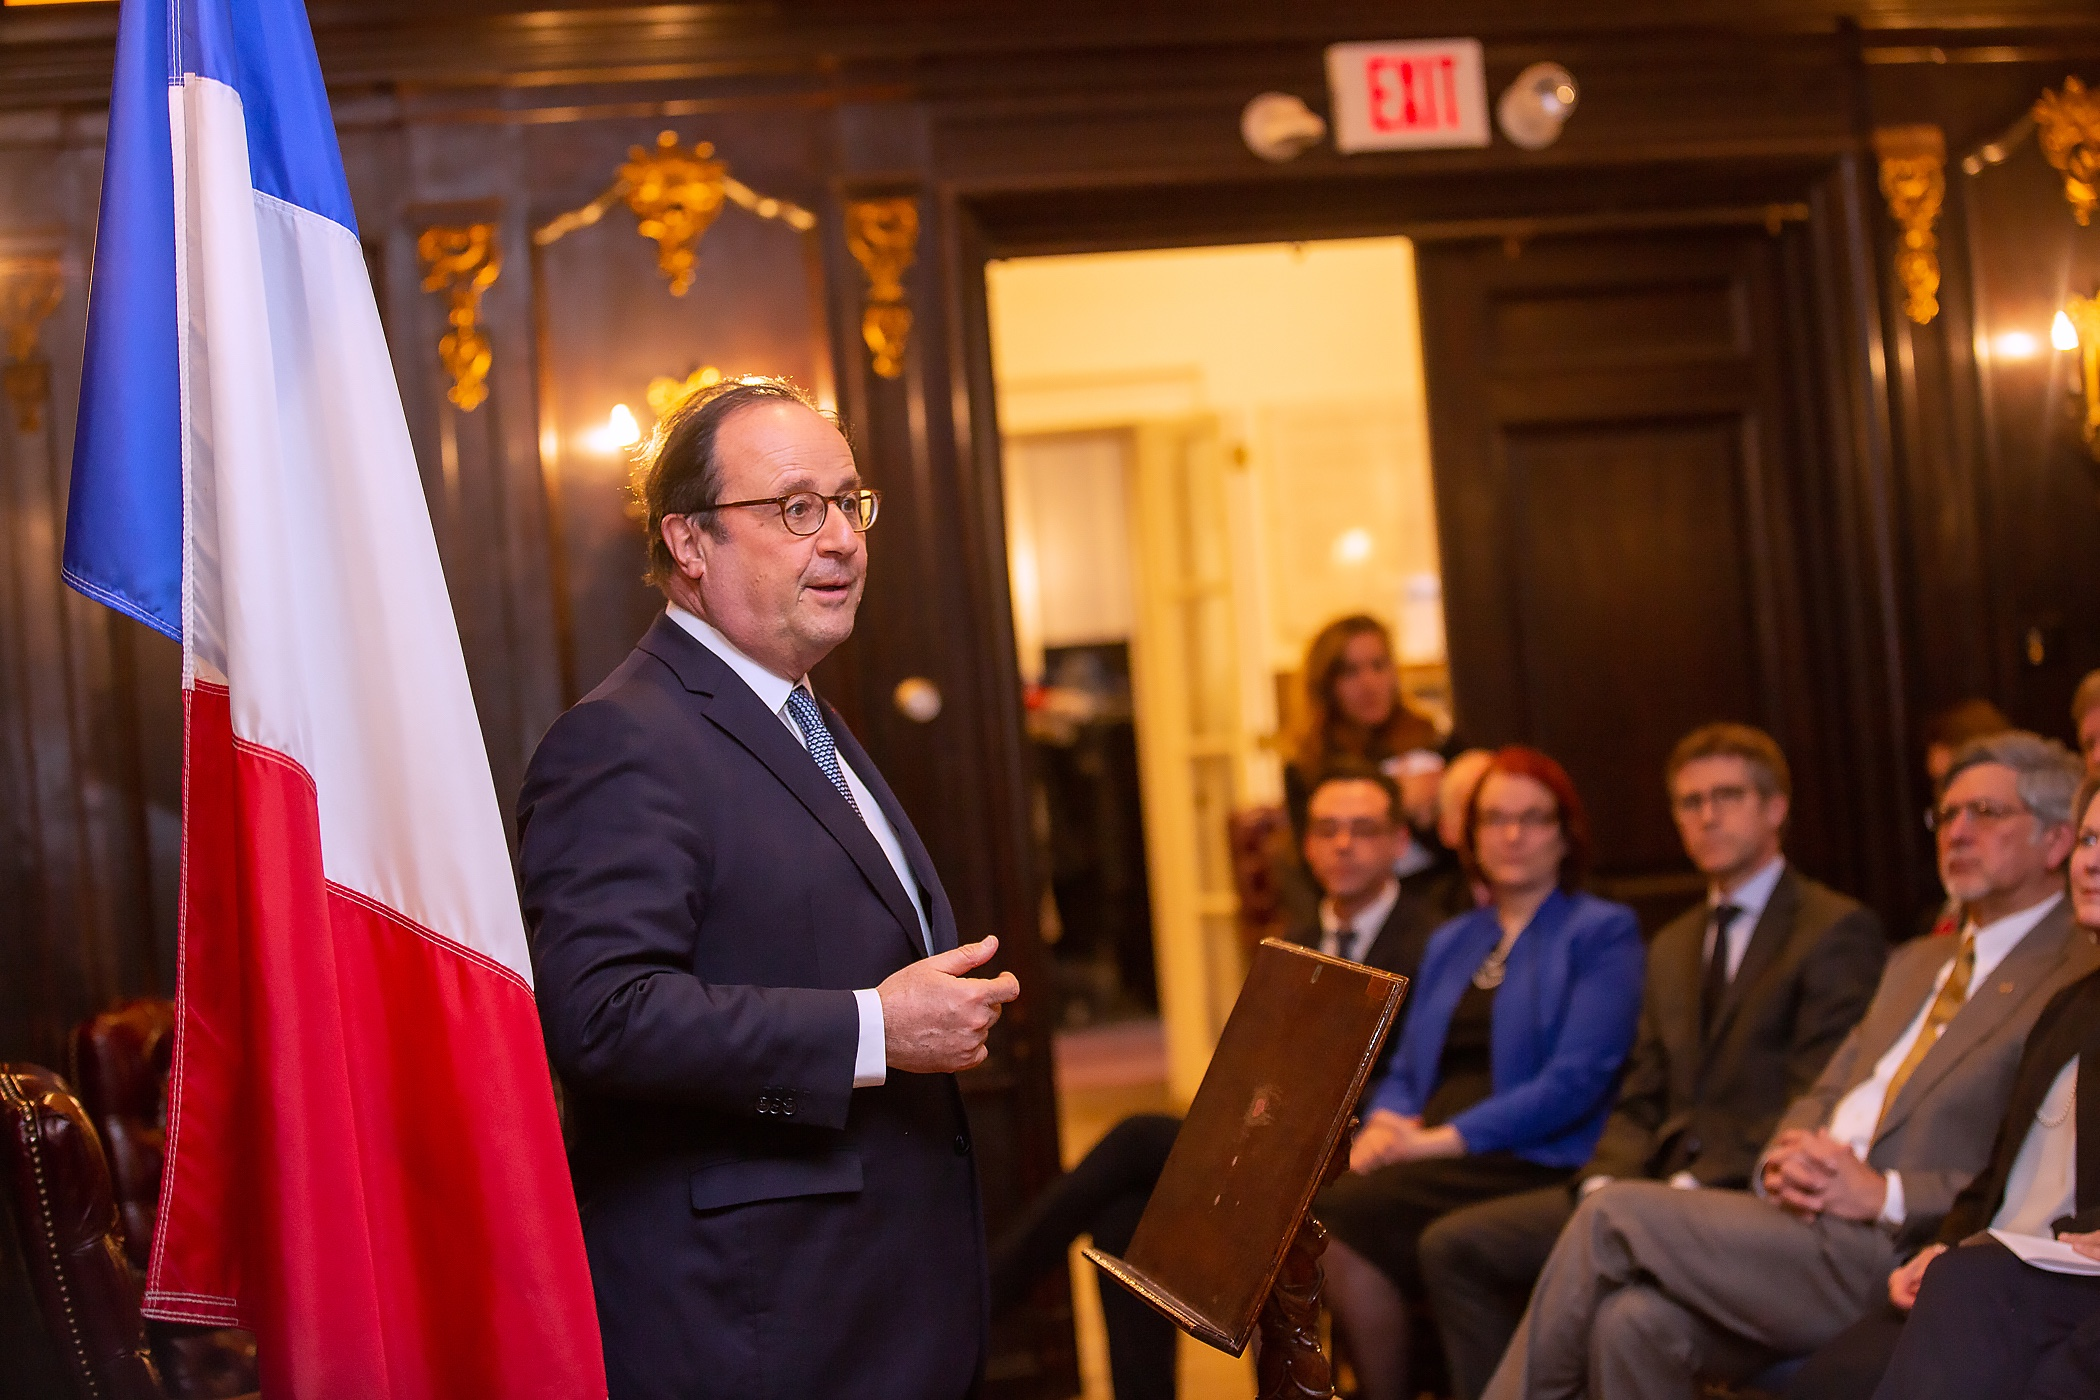 Meet and greet with former President of the French Republic François Hollande at the French Cultural Center on March 10, 2019